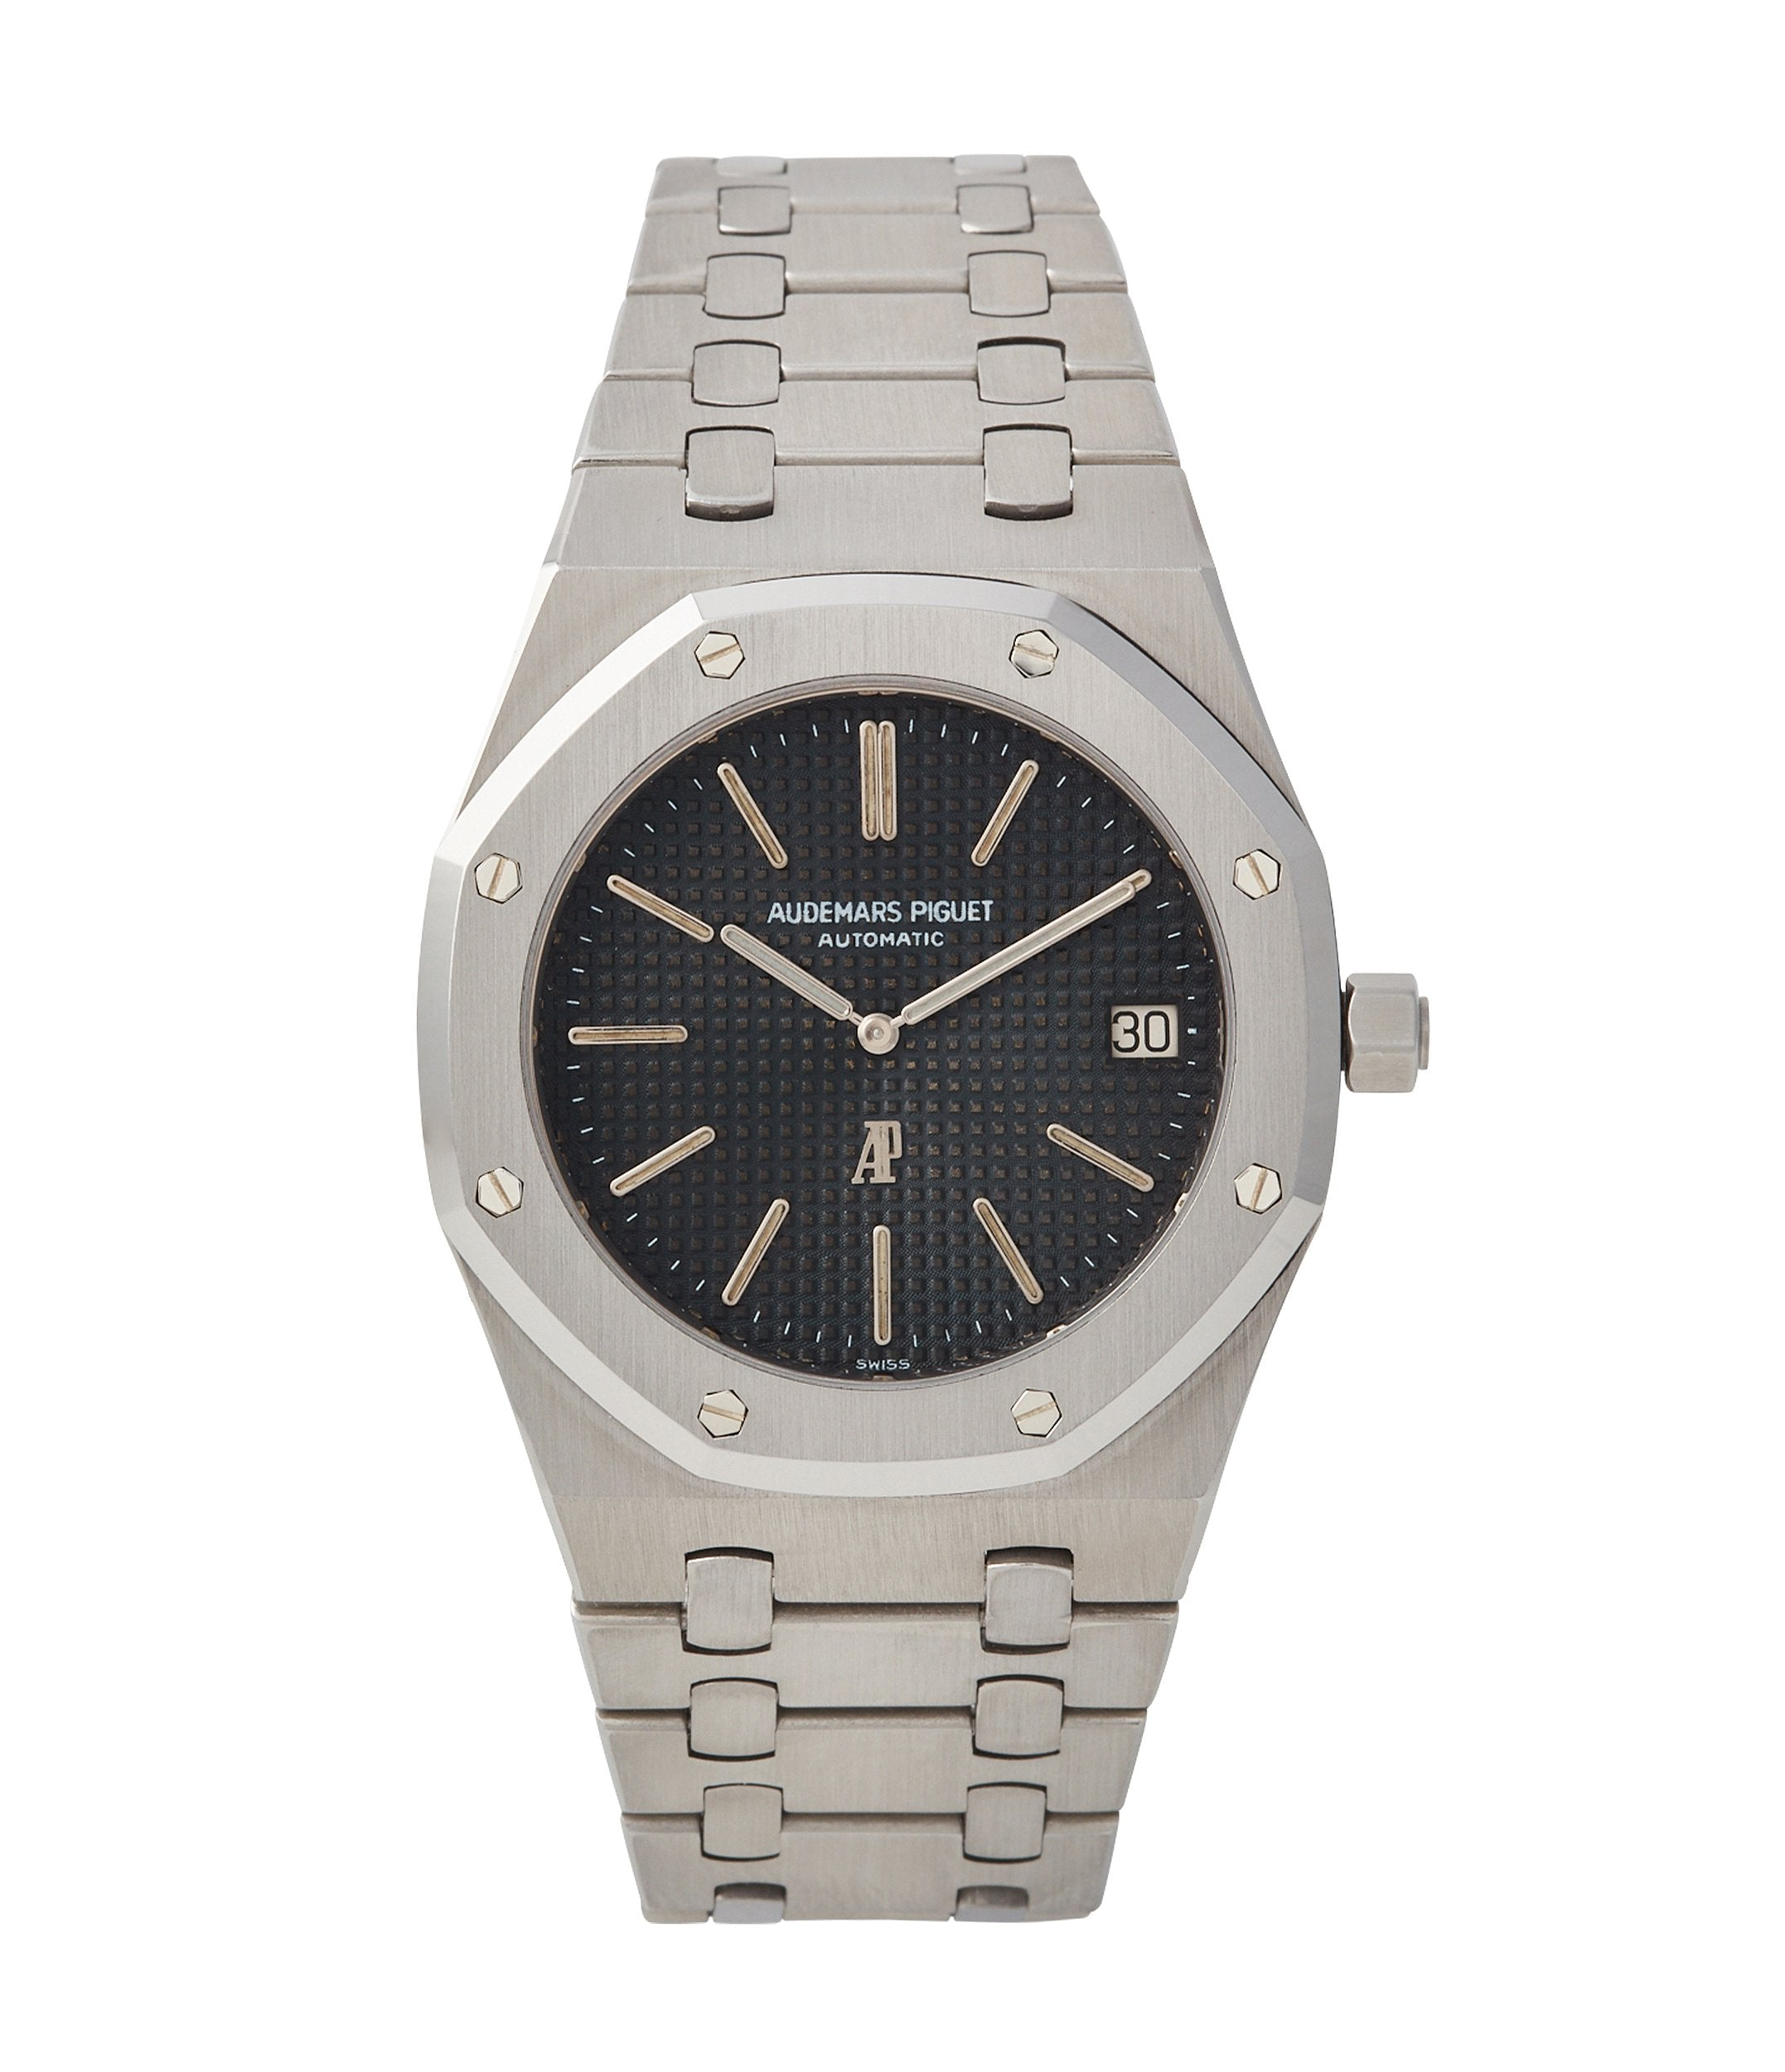 early Audemars Piguet Royal Oak early A-series steel 5402A steel sports luxury watch for sale online A Collected Man London UK specialist rare watches